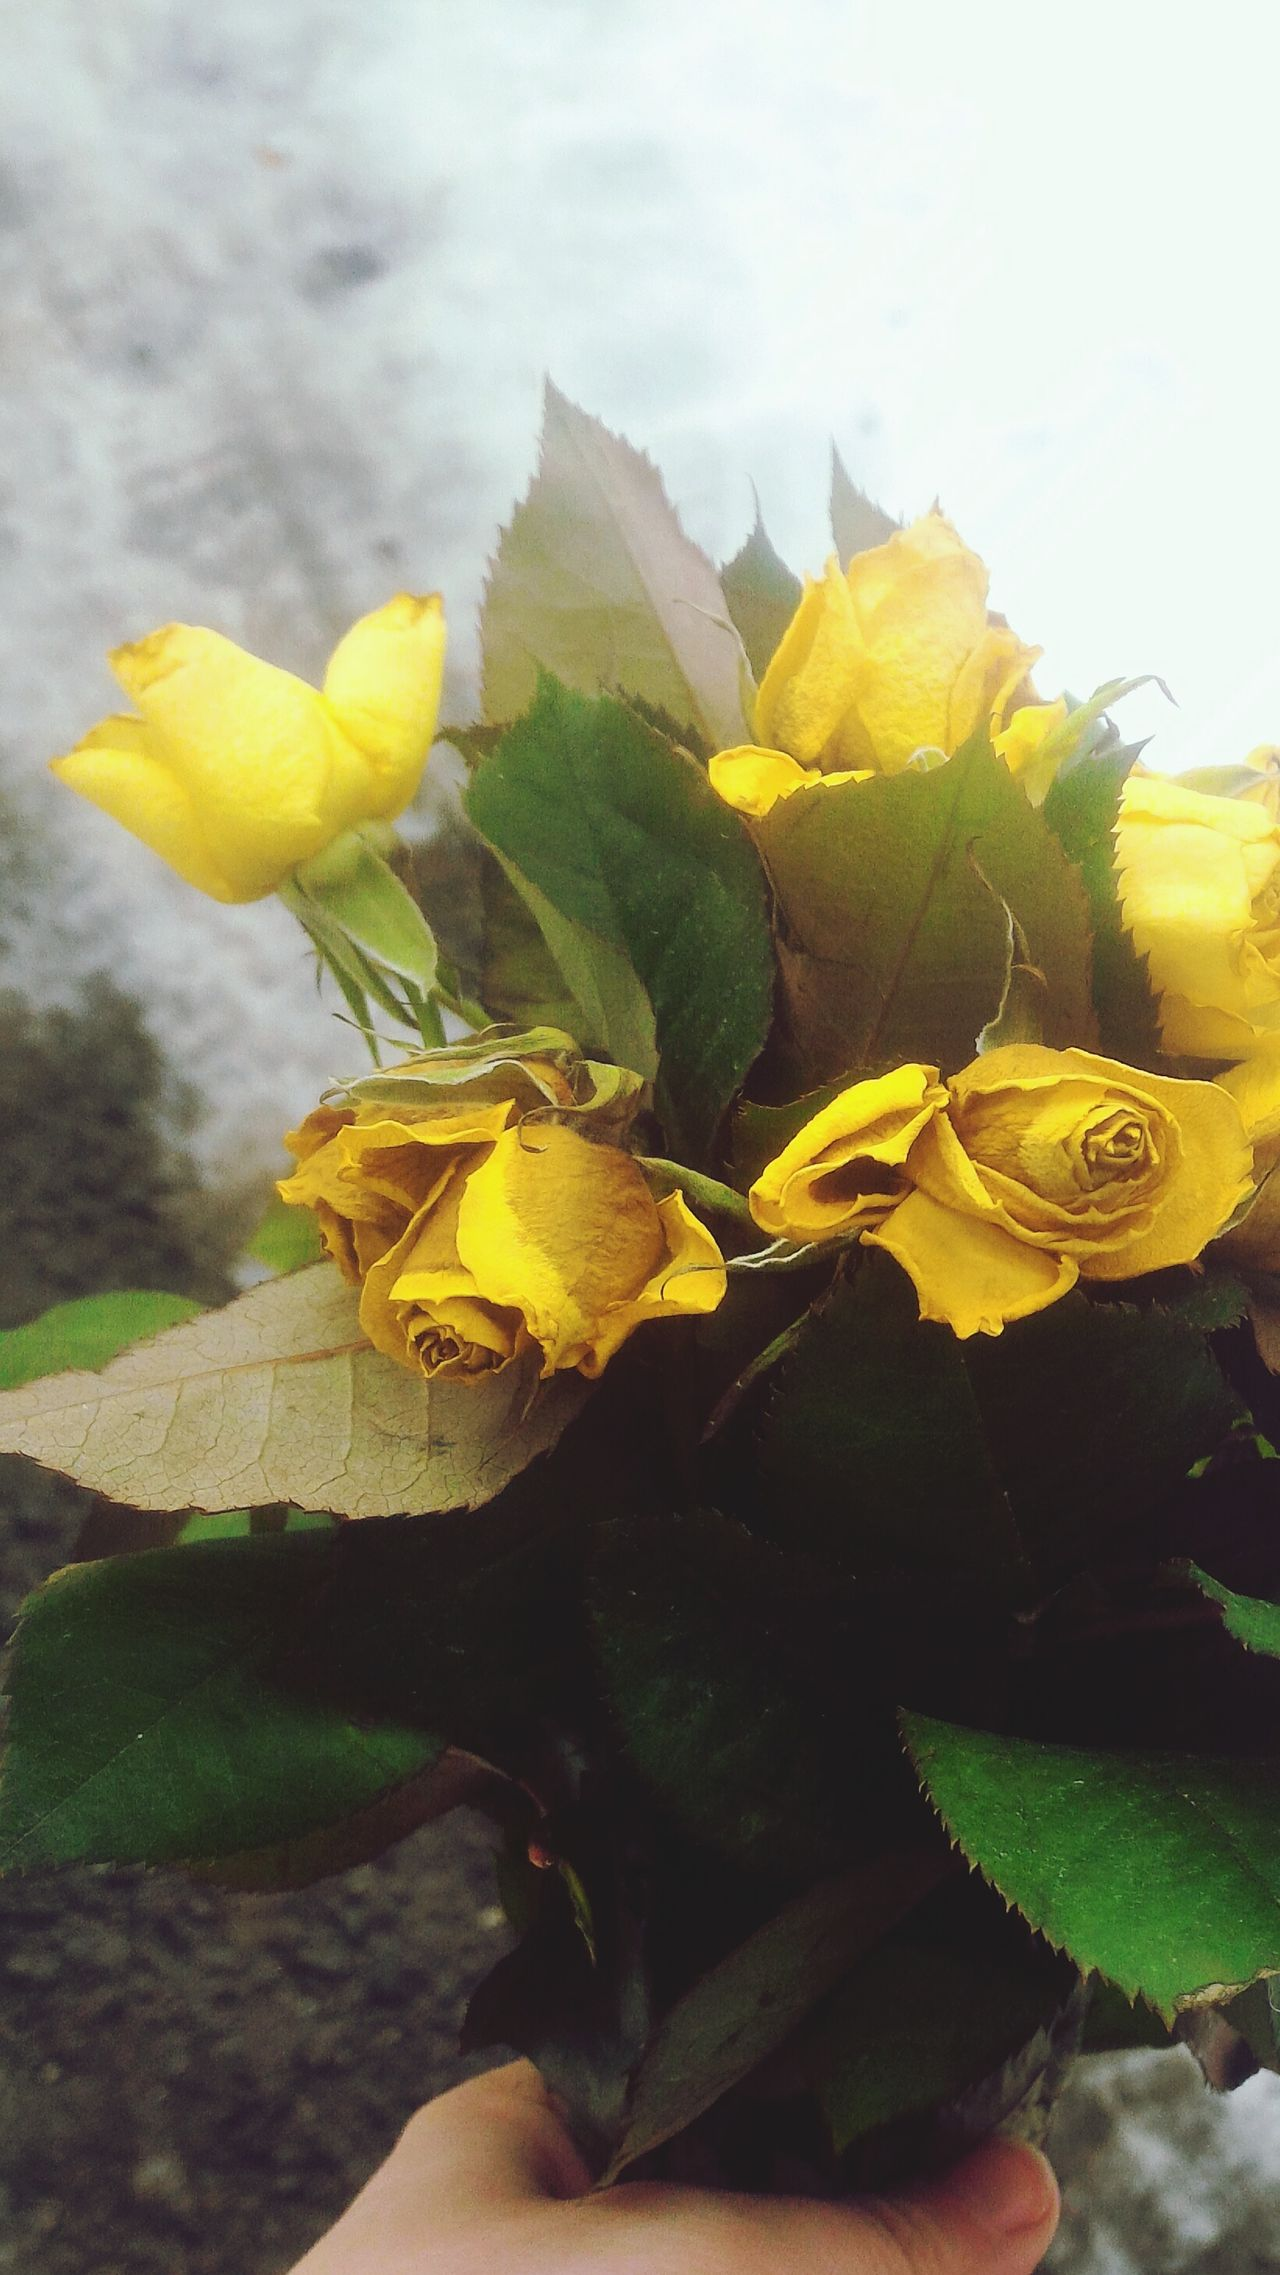 Goodbye flowers... Roses🌹 Yellow Roses Yellow Flowers Dead Flowers Snow And Flower Goodbye Everything Ends You Made Me Smile It Was Short But Beautiful